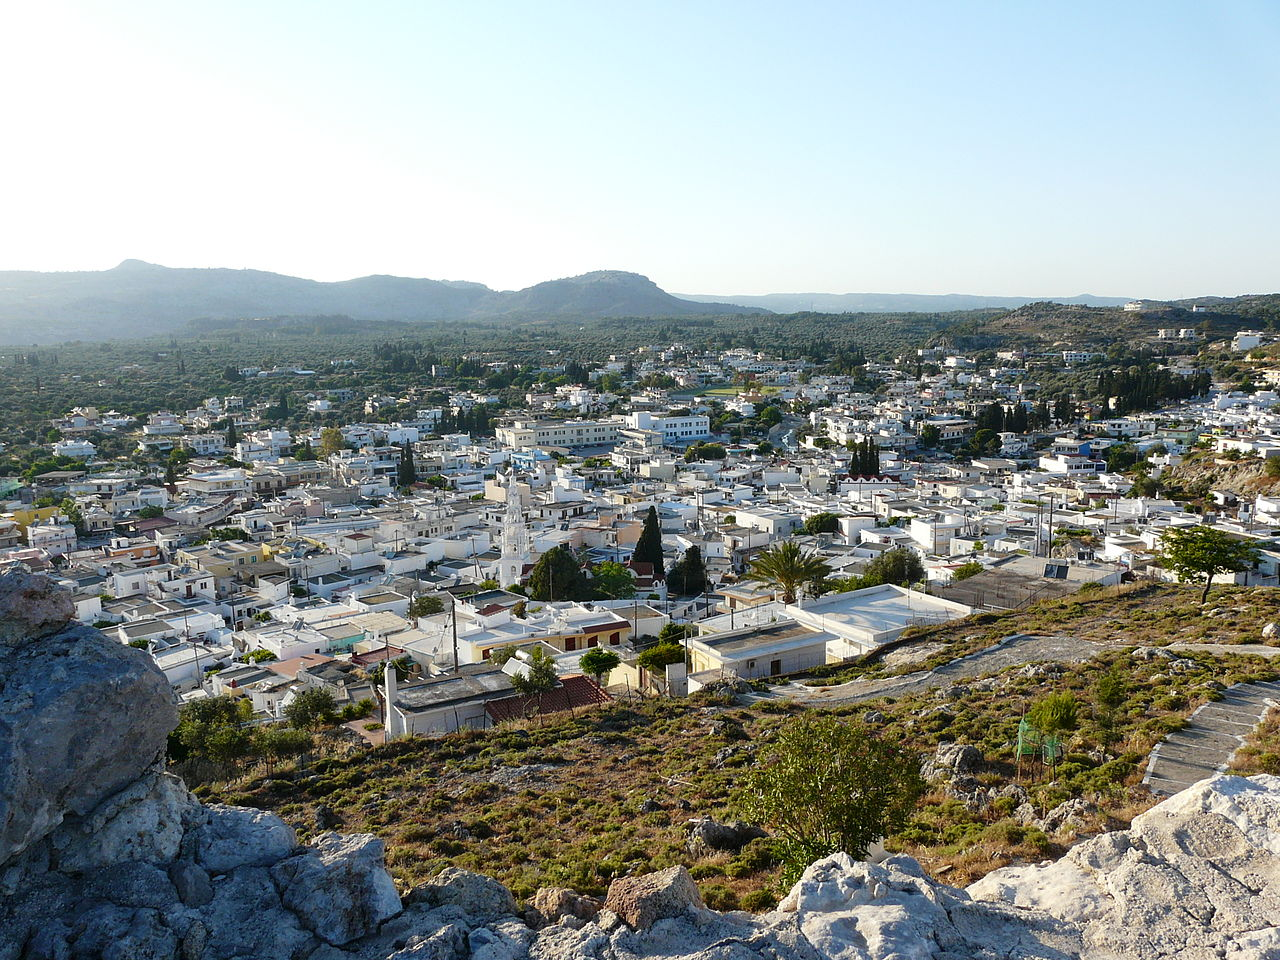 Archangelos Town and Castle: 5th Largest City on Rhodes Island and Named After Archangel Michael (2020)